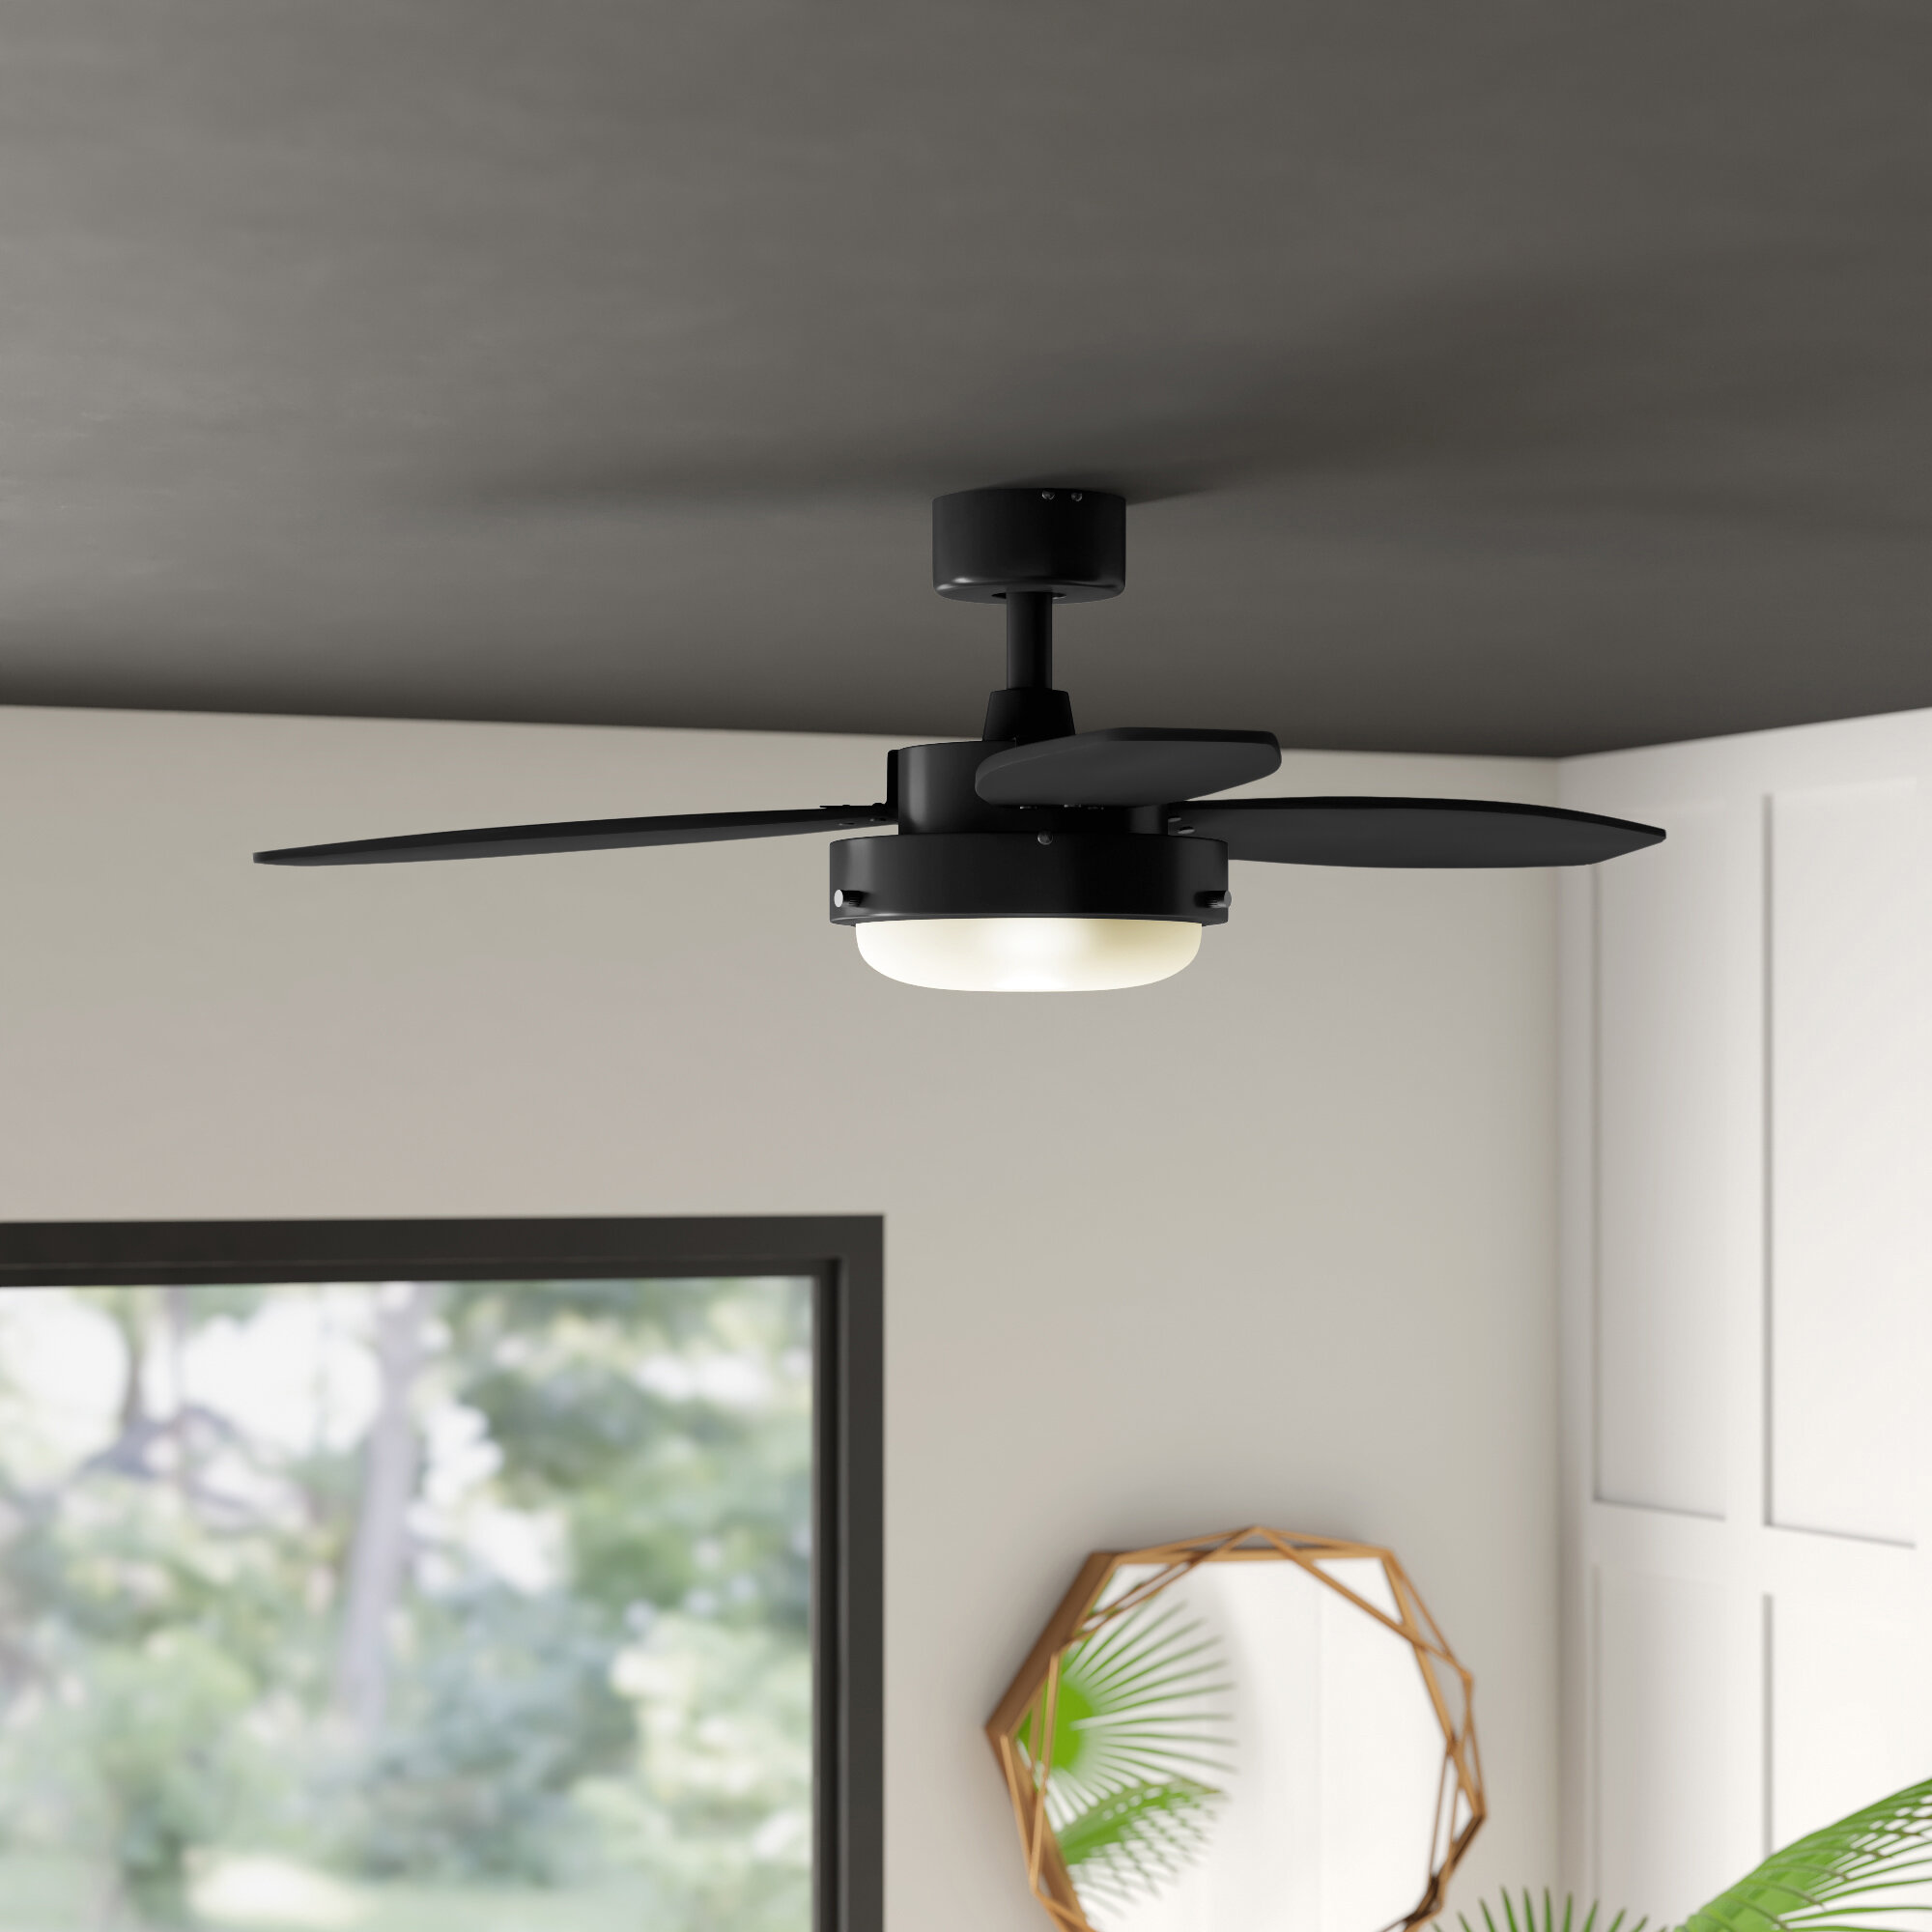 Mercury Row 42 Corsa 3 Blade Standard Ceiling Fan With Pull Chain And Light Kit Included Reviews Wayfair